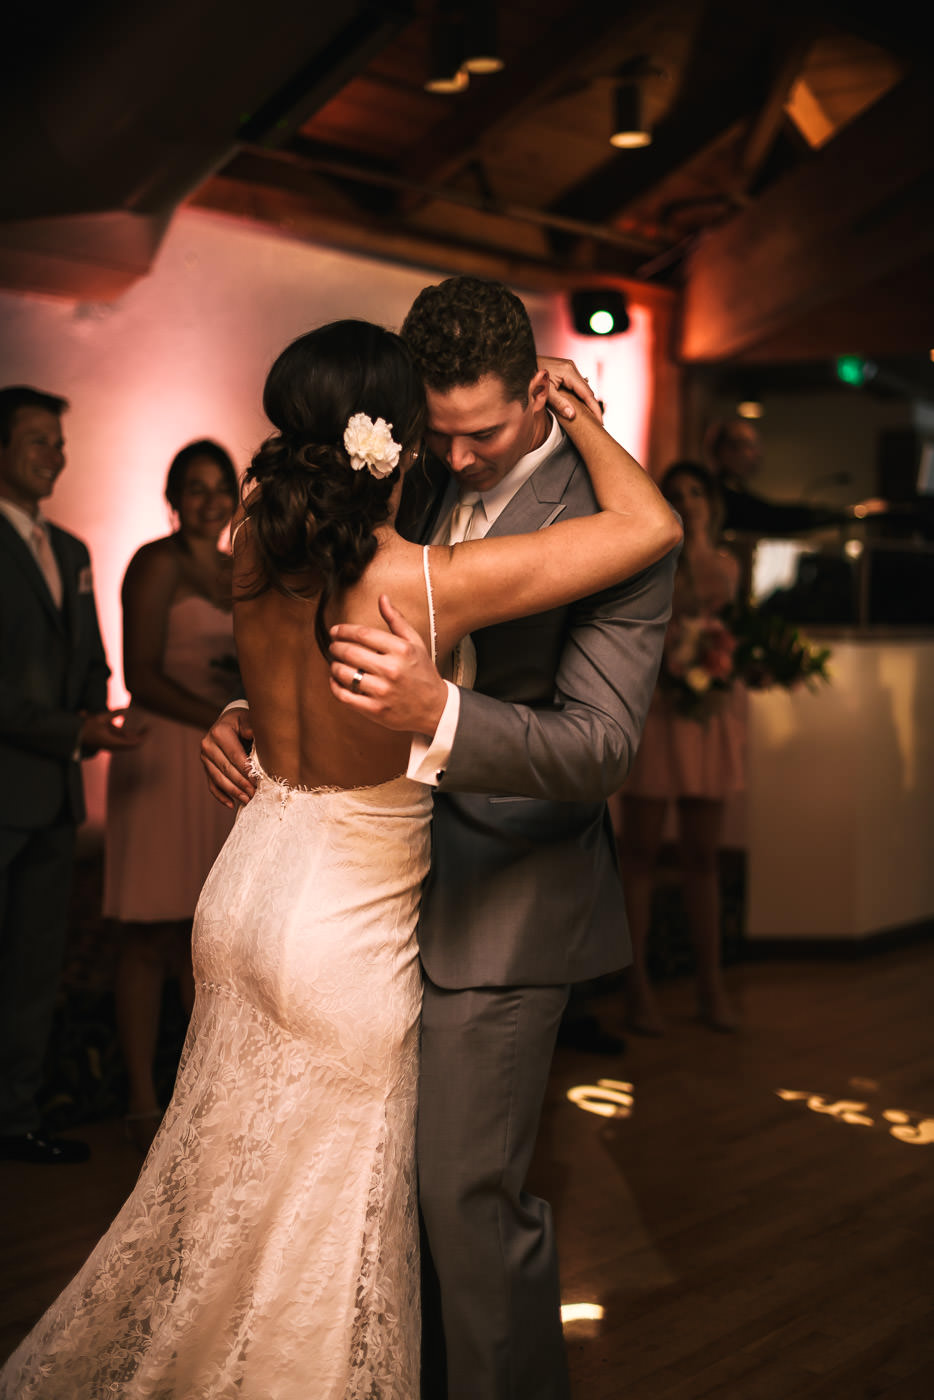 Romantic first dance at a lovely wedding reception at Marina Village.